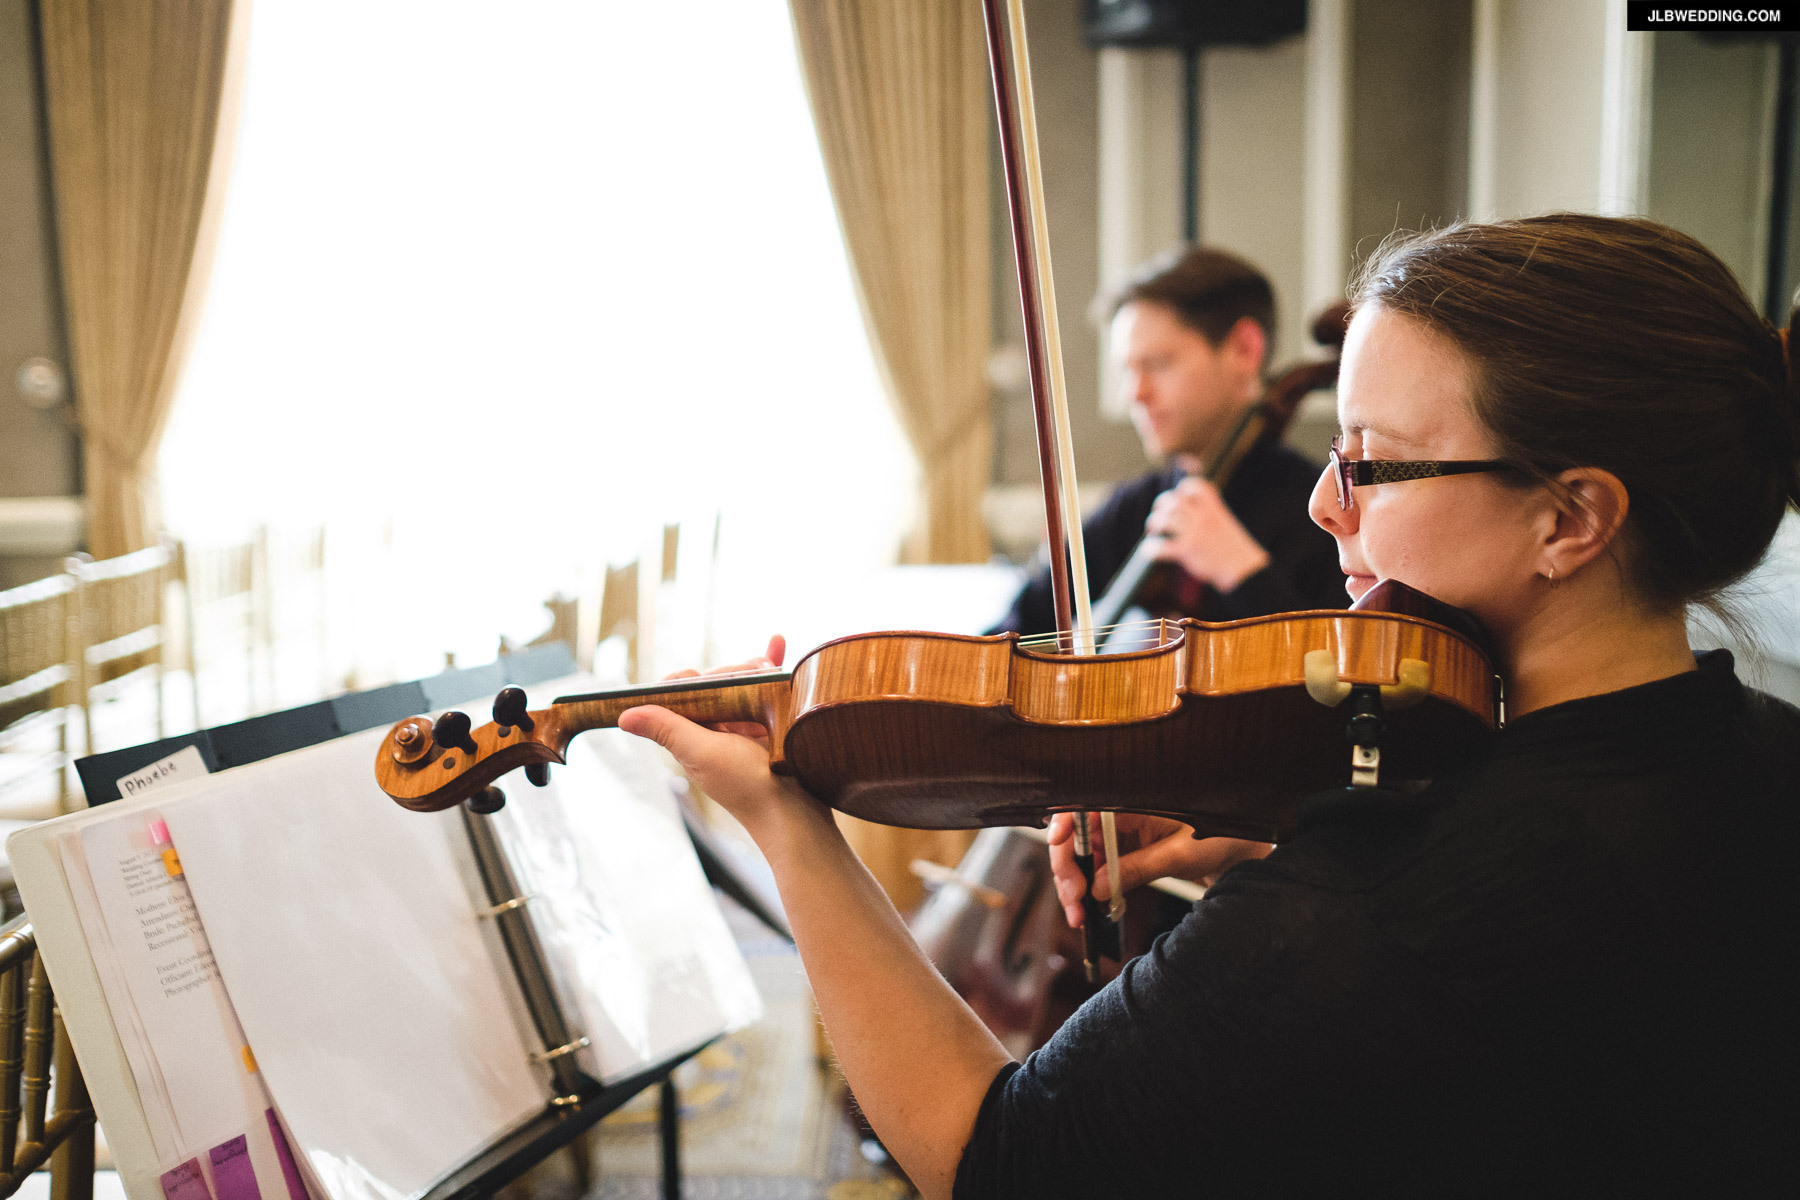 String Duet performing at a ceremony at the Detroit Athletic Club. Photo captured by Jeffrey Lewis Bennett of  JLB Photography